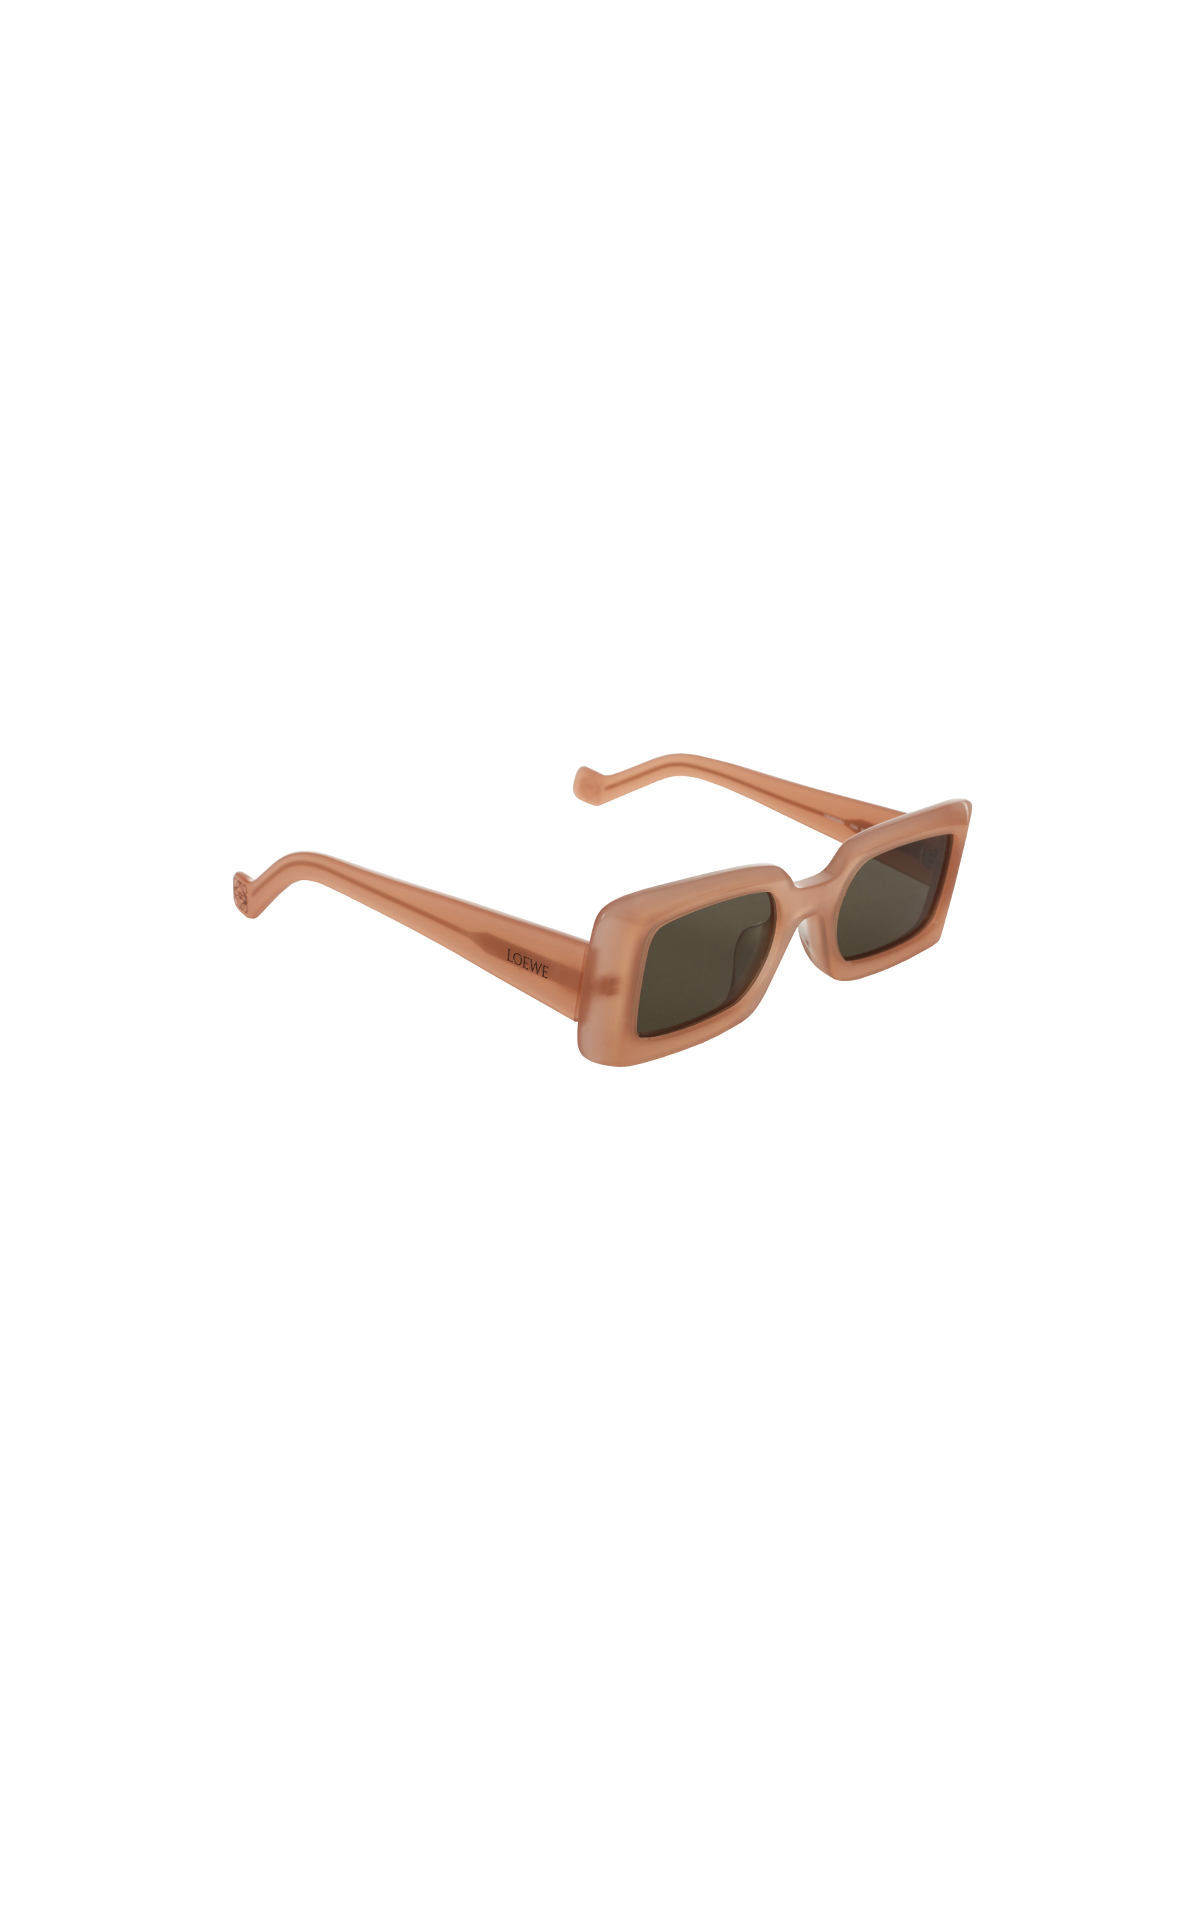 Loewe Acetate square sunglasses pink and green smoke from Bicester Village